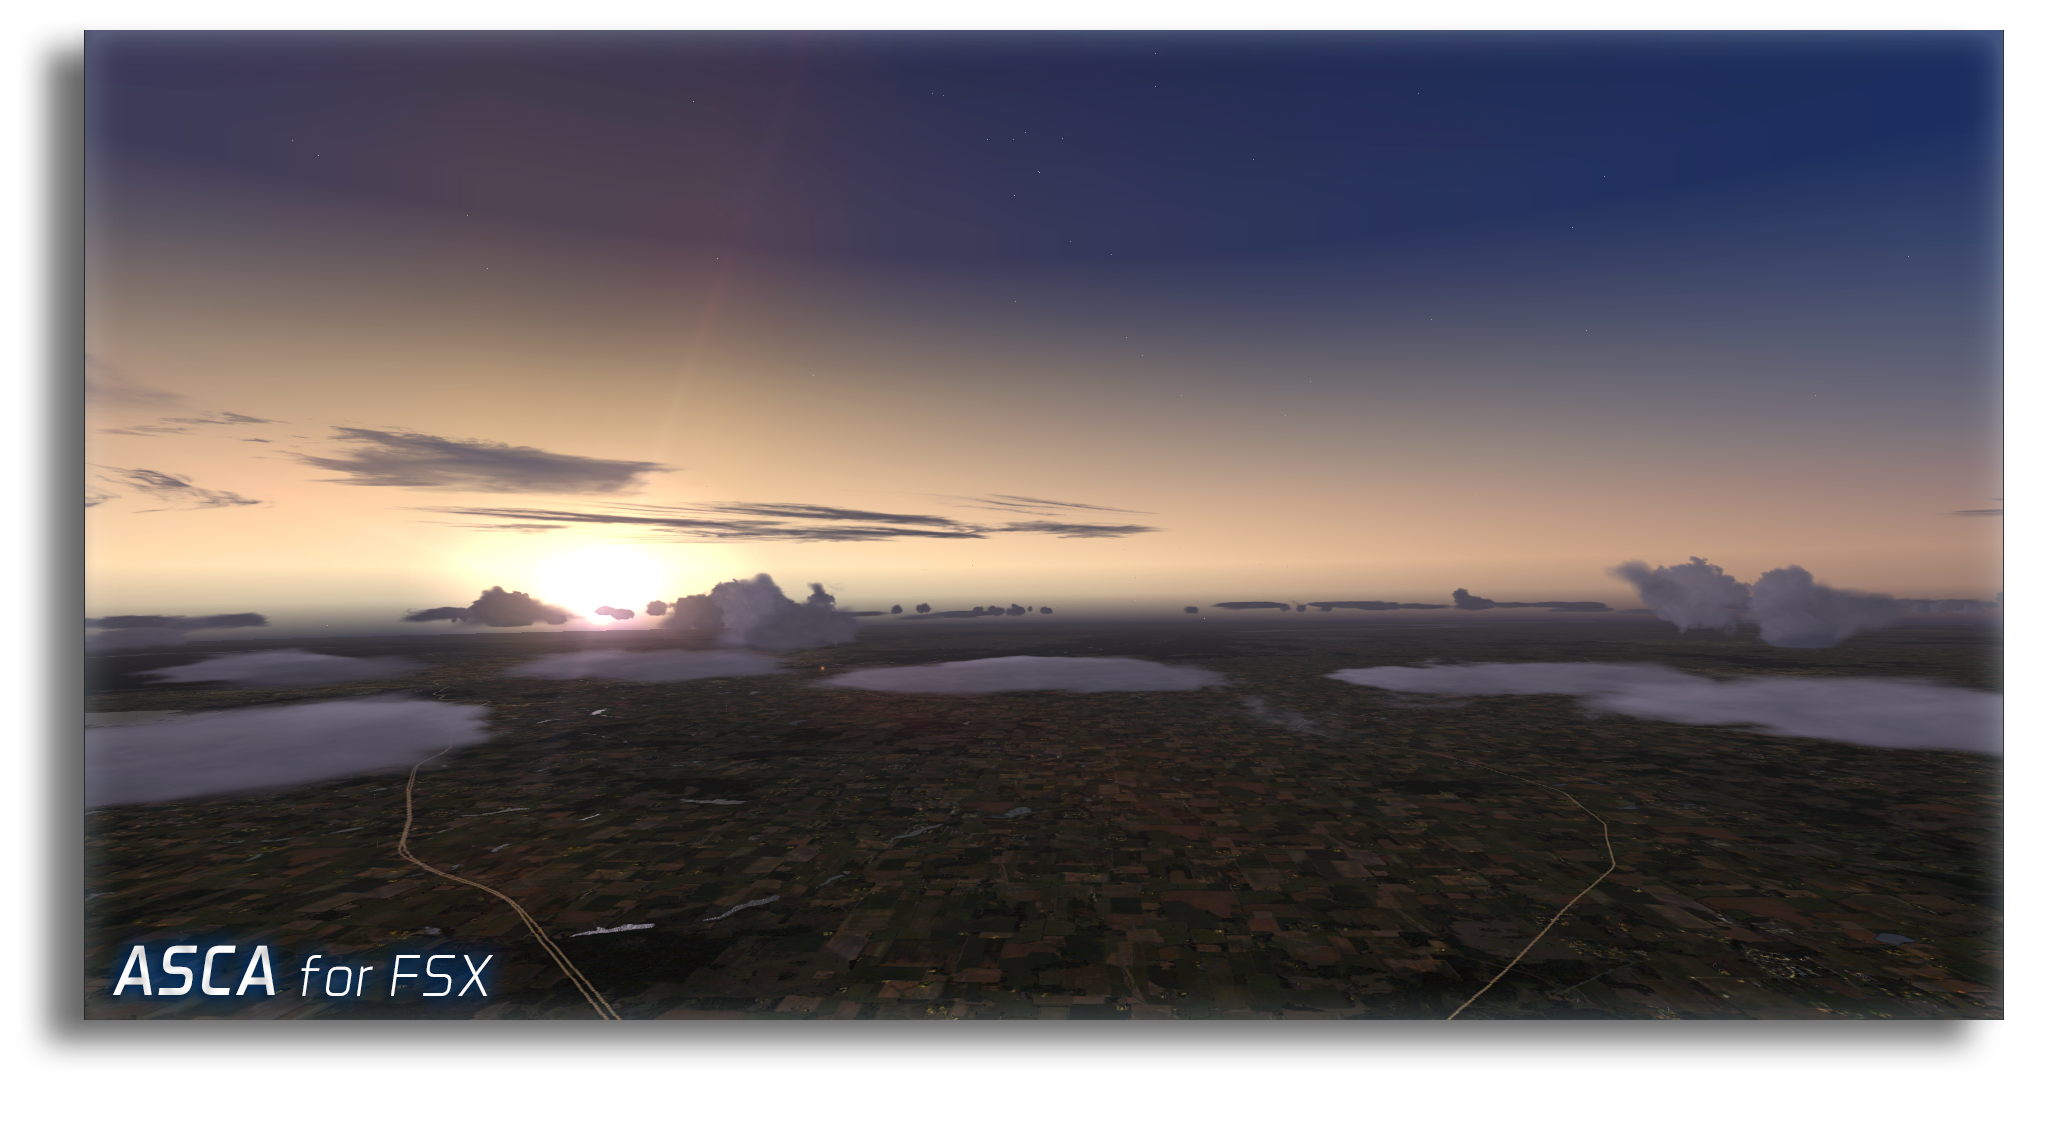 HIFI TECH - ACTIVE SKY CLOUD ART FSX P3D